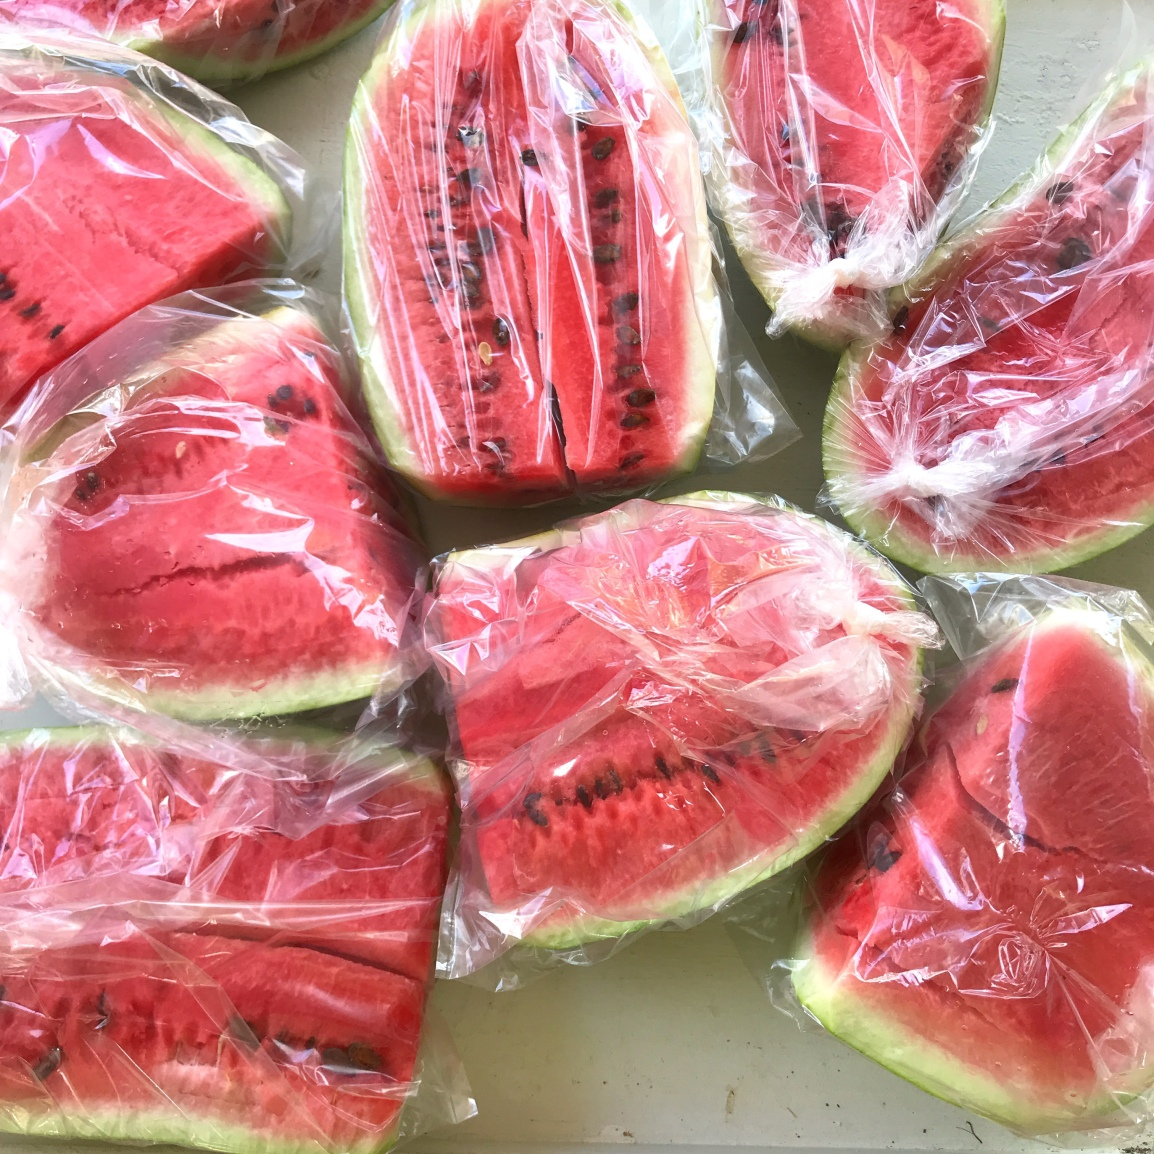 watermelon cut into chunks and bagged in plastic